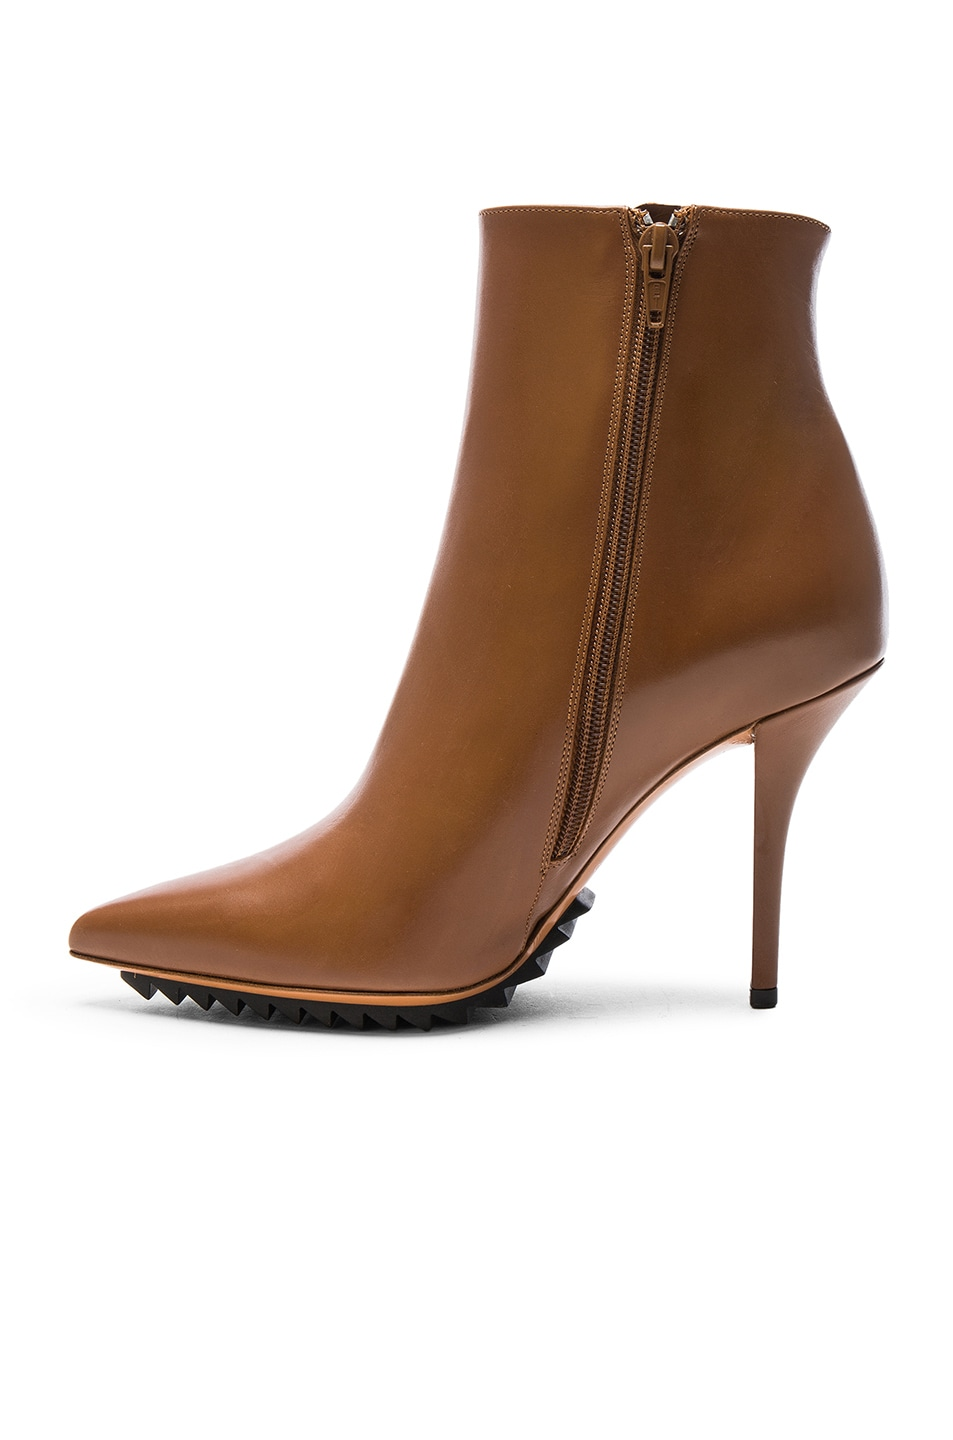 Image 5 of Givenchy Iron Ankle Leather Booties in Camel